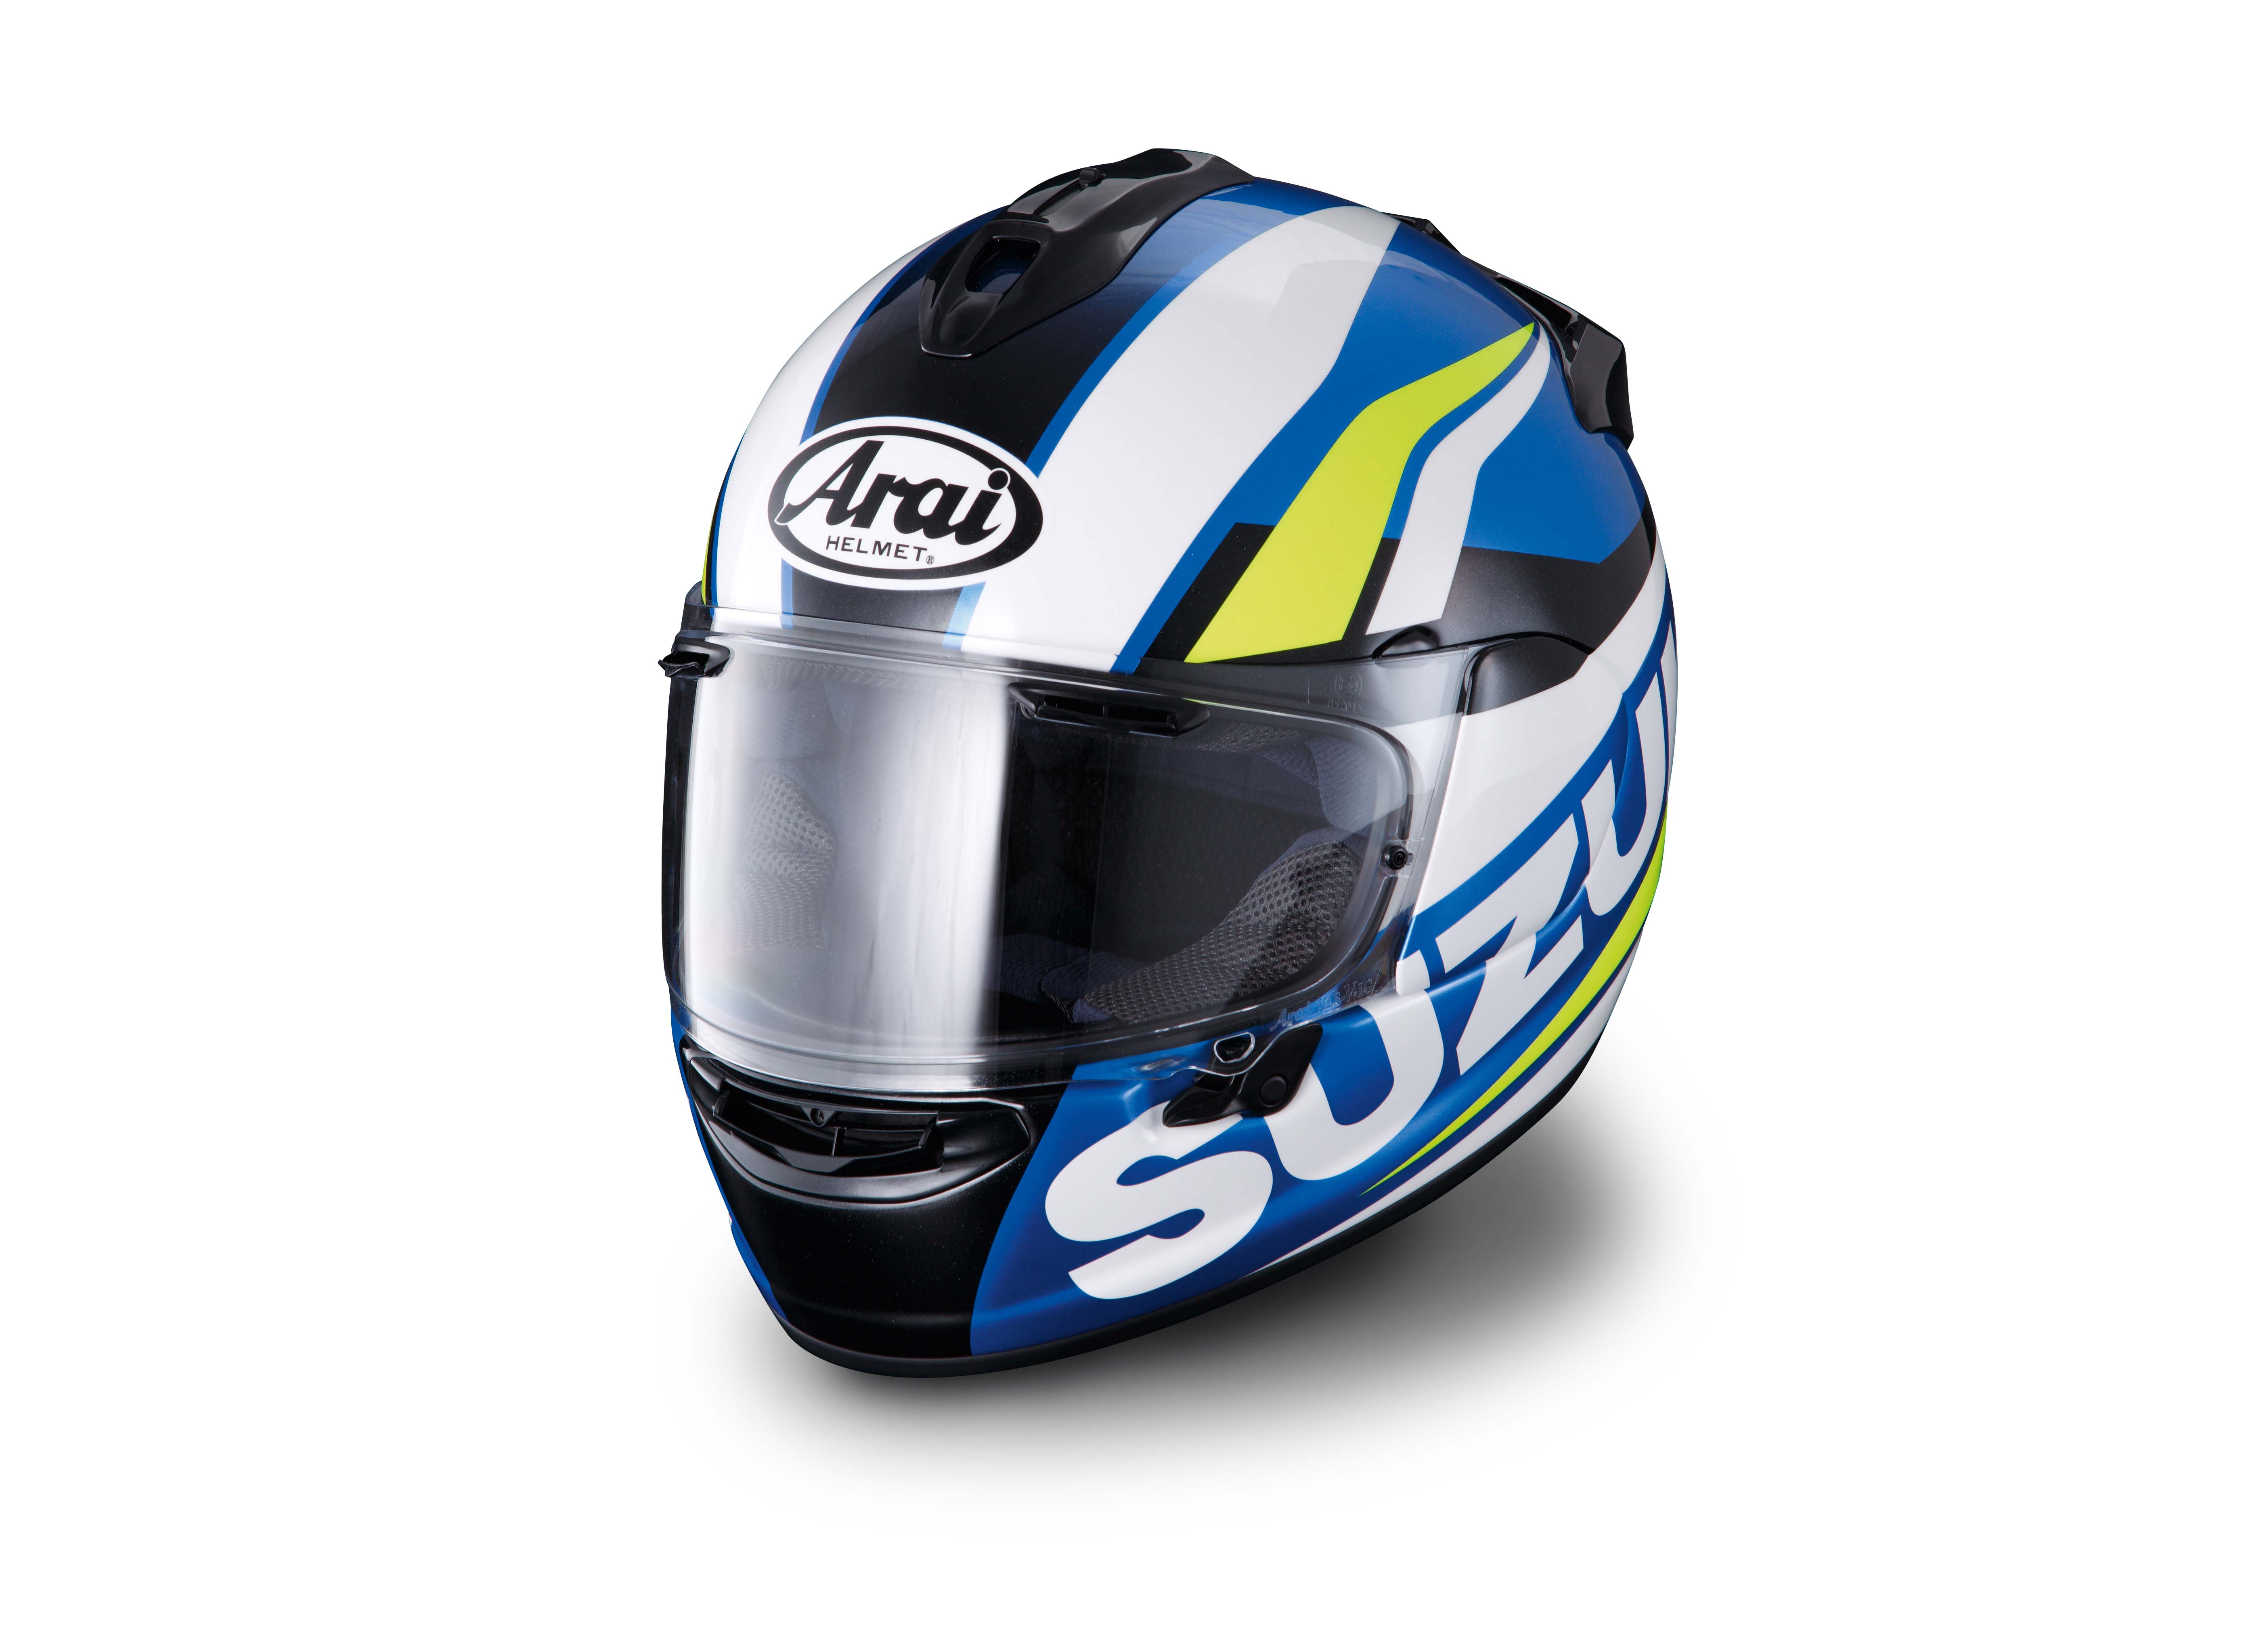 41c017a1 Arai Chaser-X Suzuki MotoGP Limited Edition Helmet | Two Wheel Centre |  Free UK Delivery